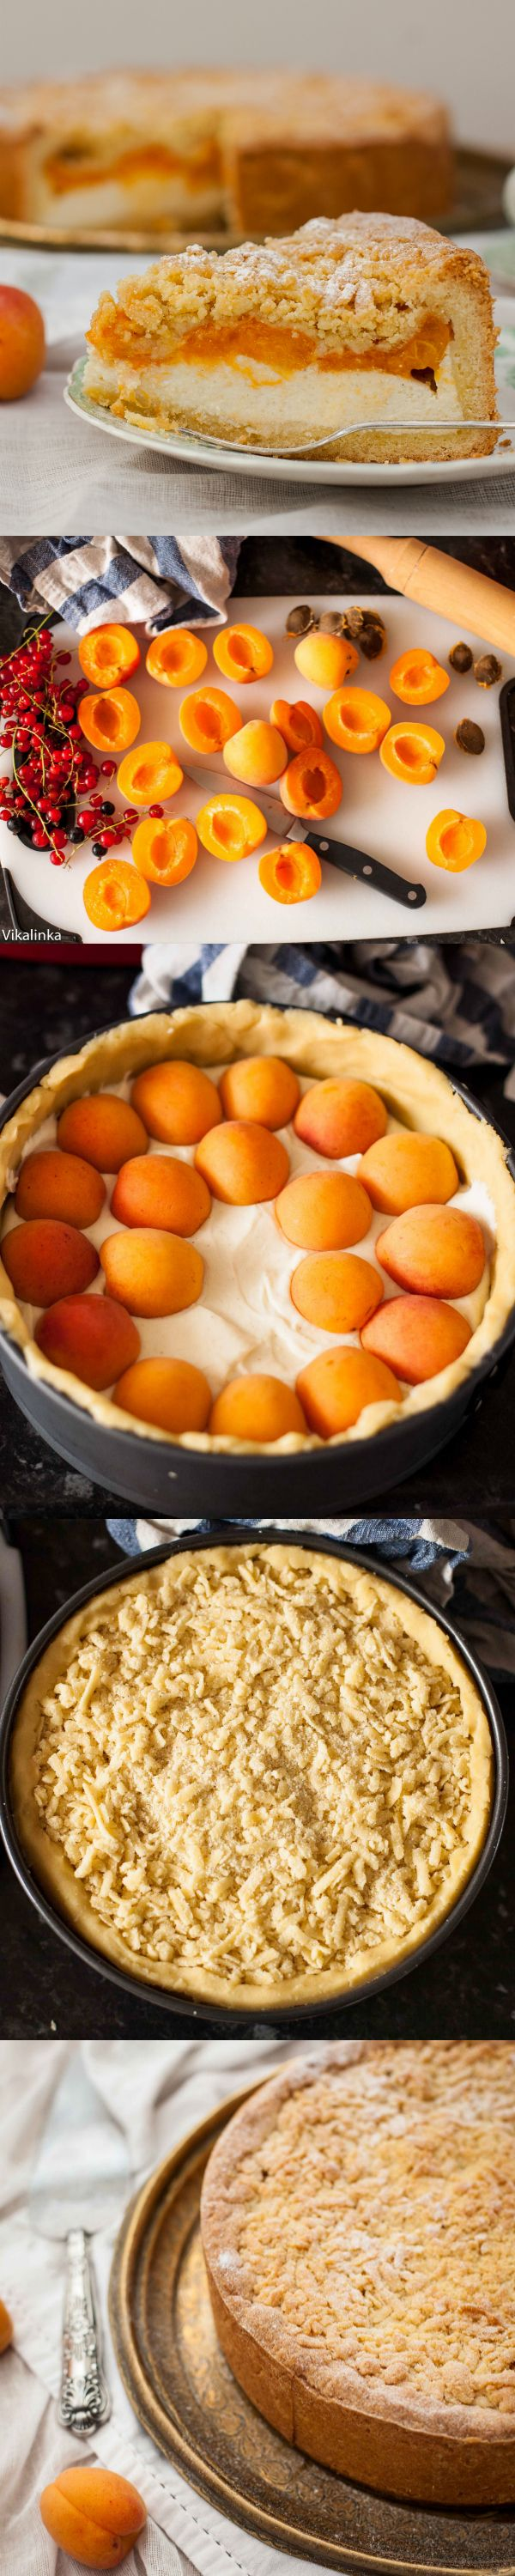 LOVE cheese and apricot together. Apricot cheese Danish is one of my favorite things in life. So this seems like a very good idea. — Crumb Apricot Cheesecake by vikalinka